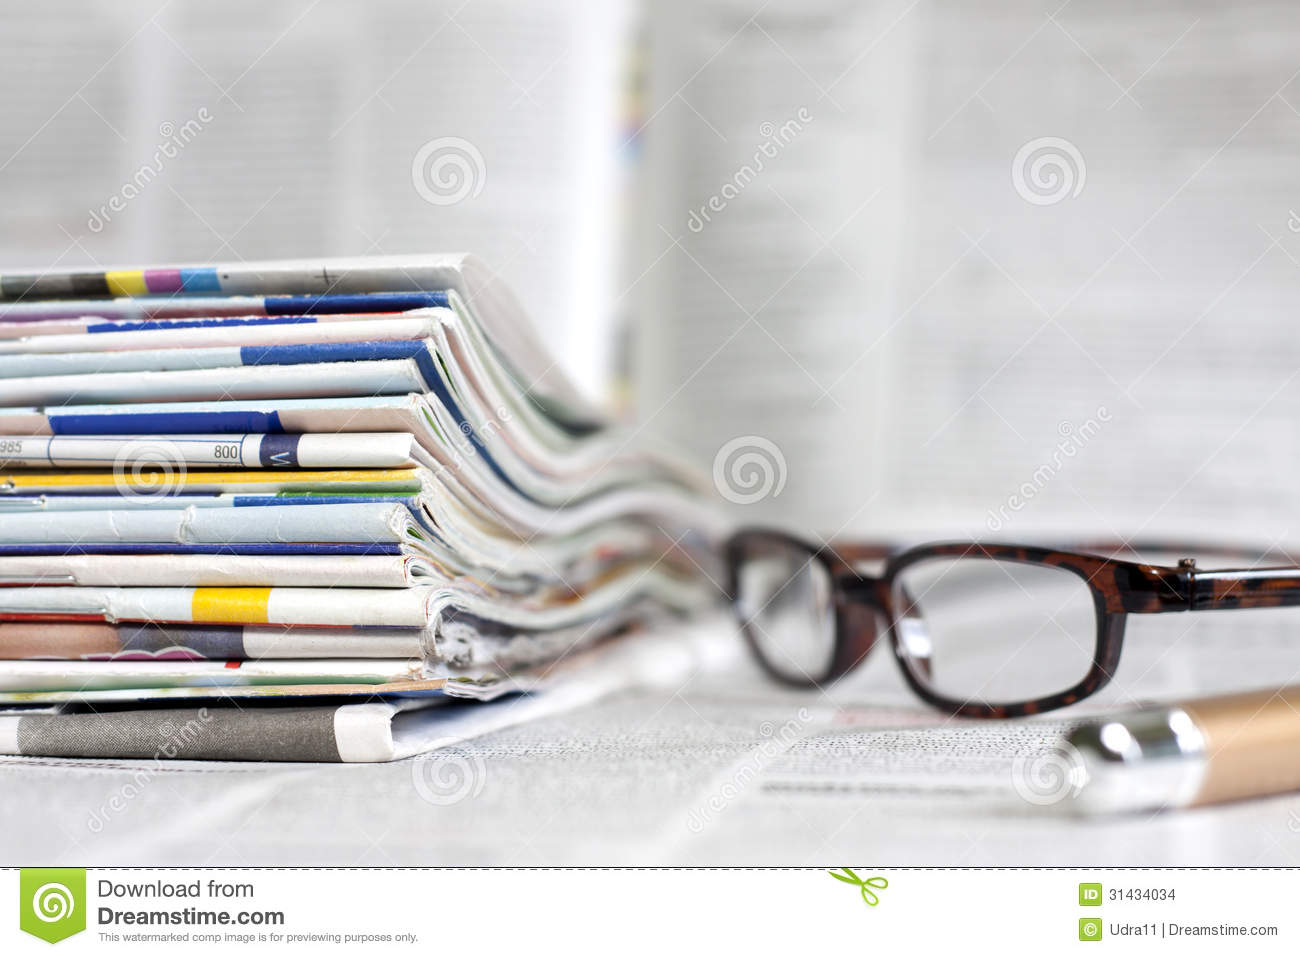 Newspapers And Magazines Background Concept Stock Images - Image ...